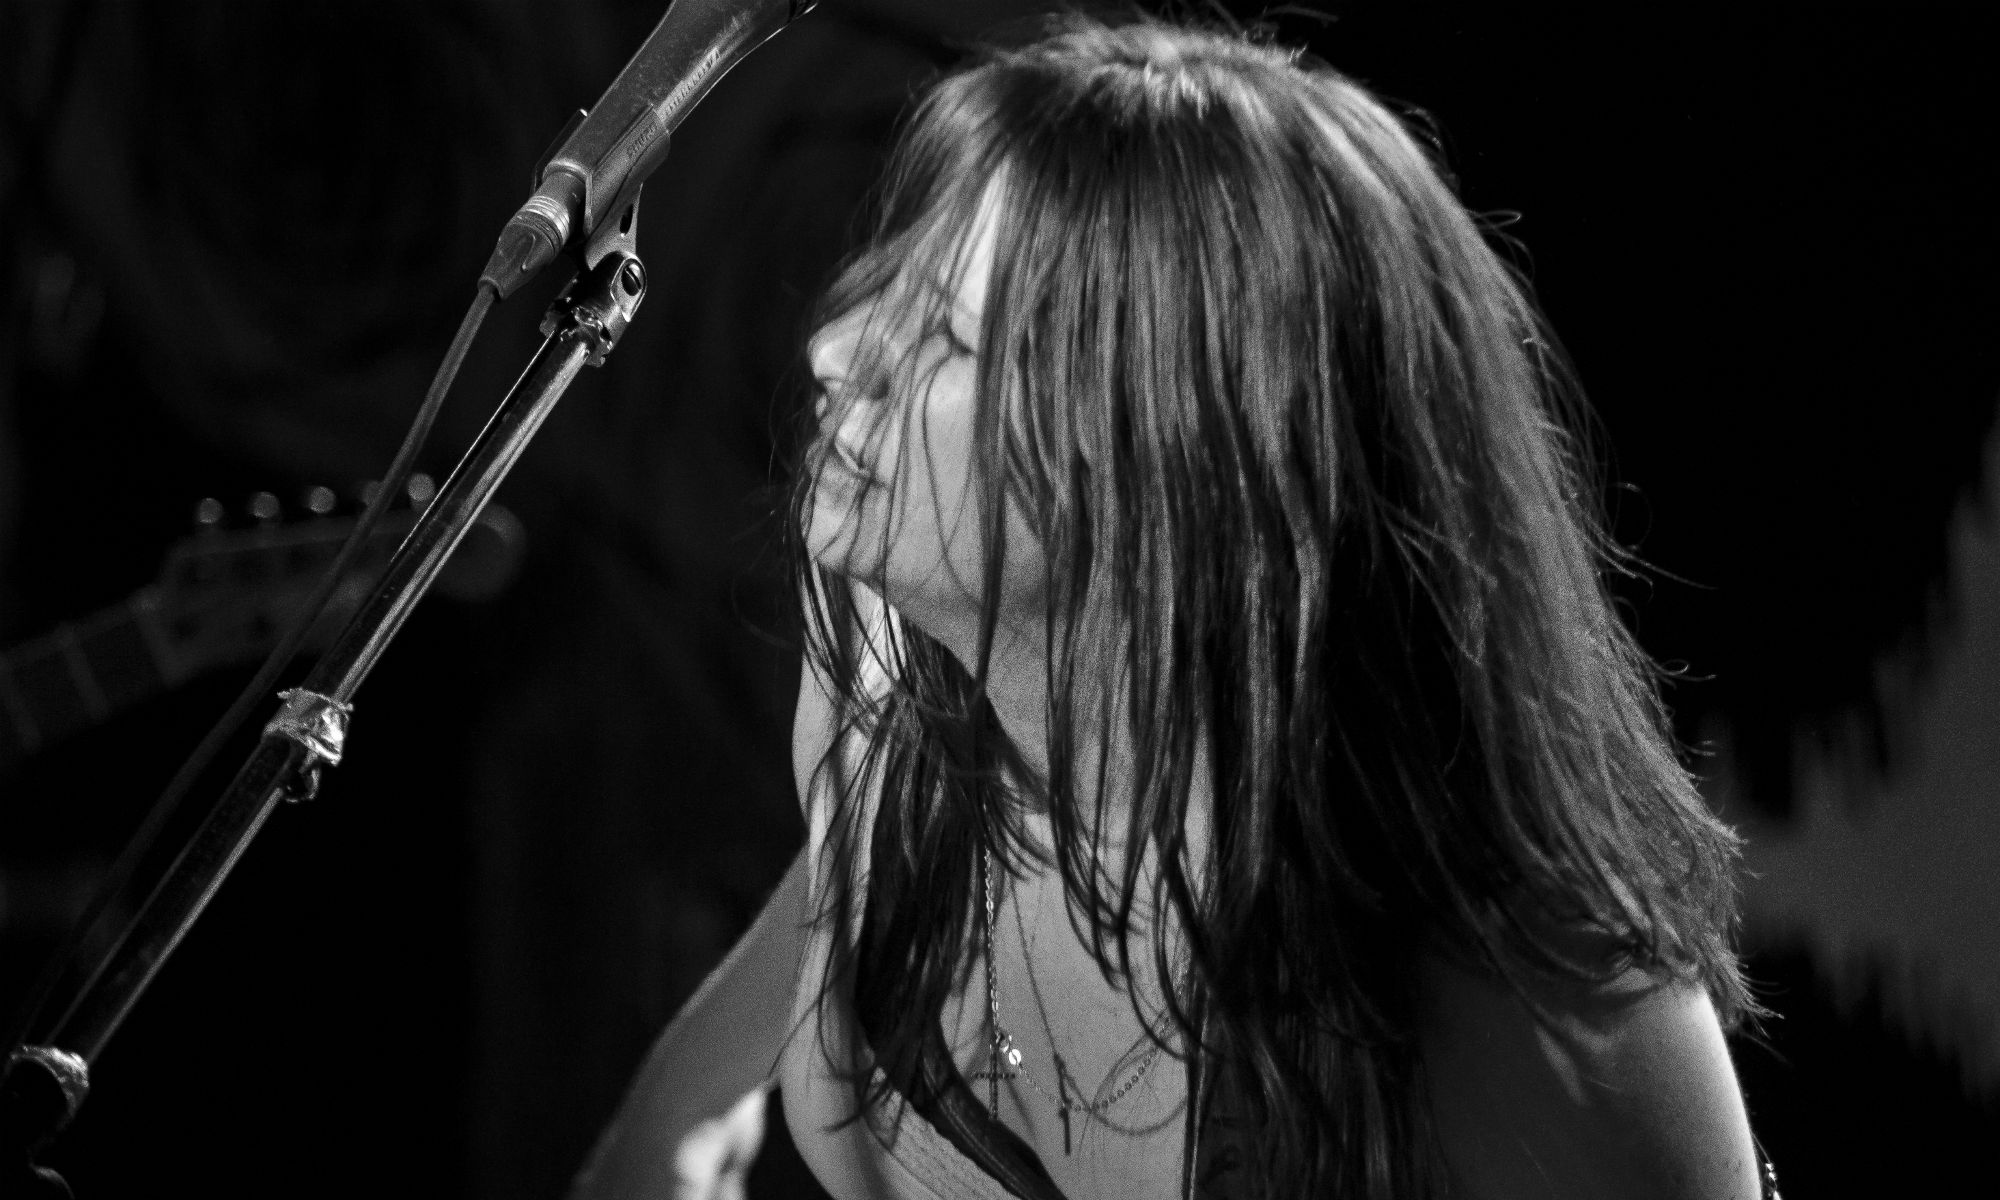 MENA HARDY - OFFICIAL BAND SITE